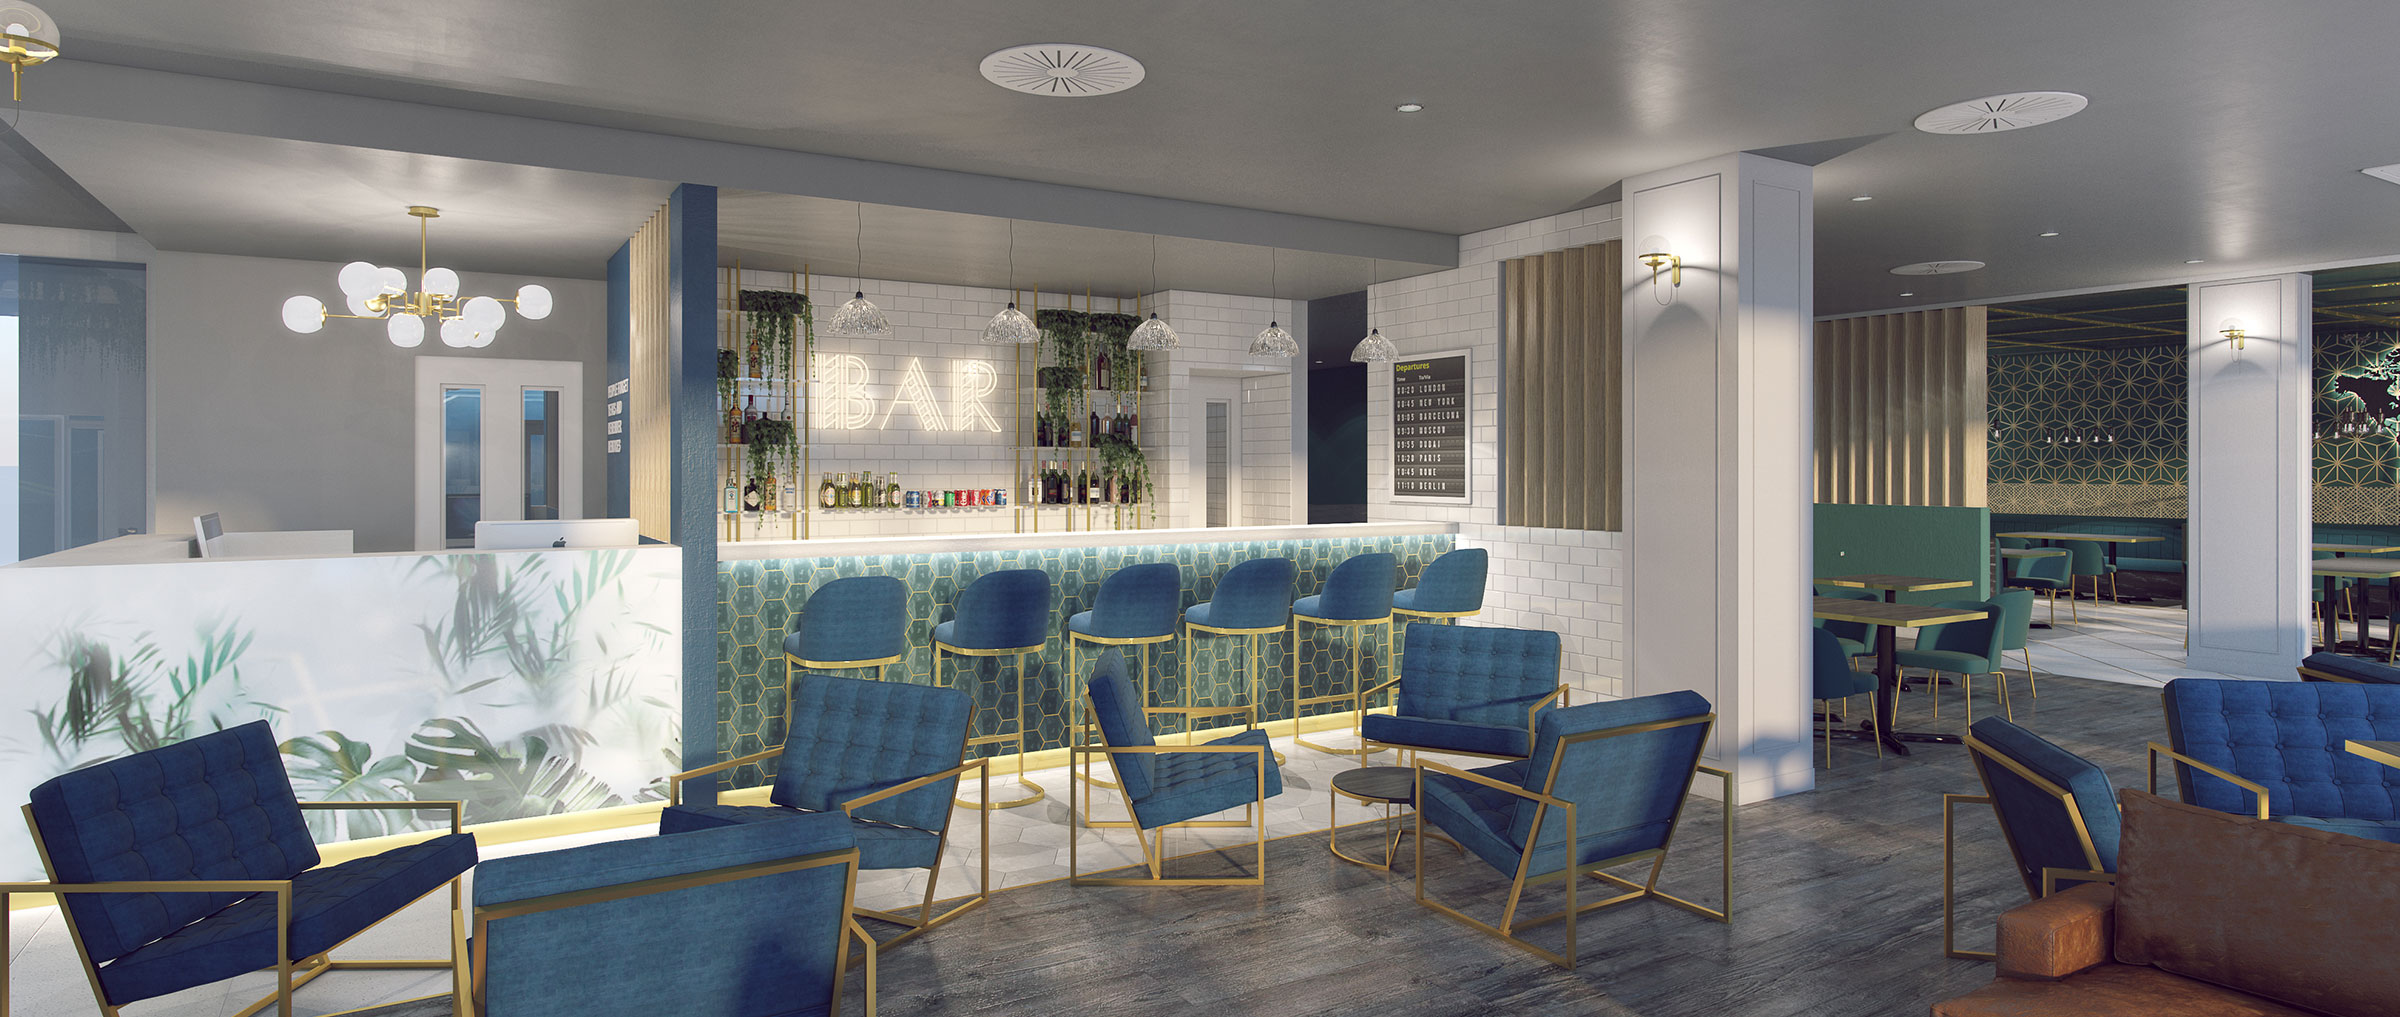 wide shot of a hotel bar seating area